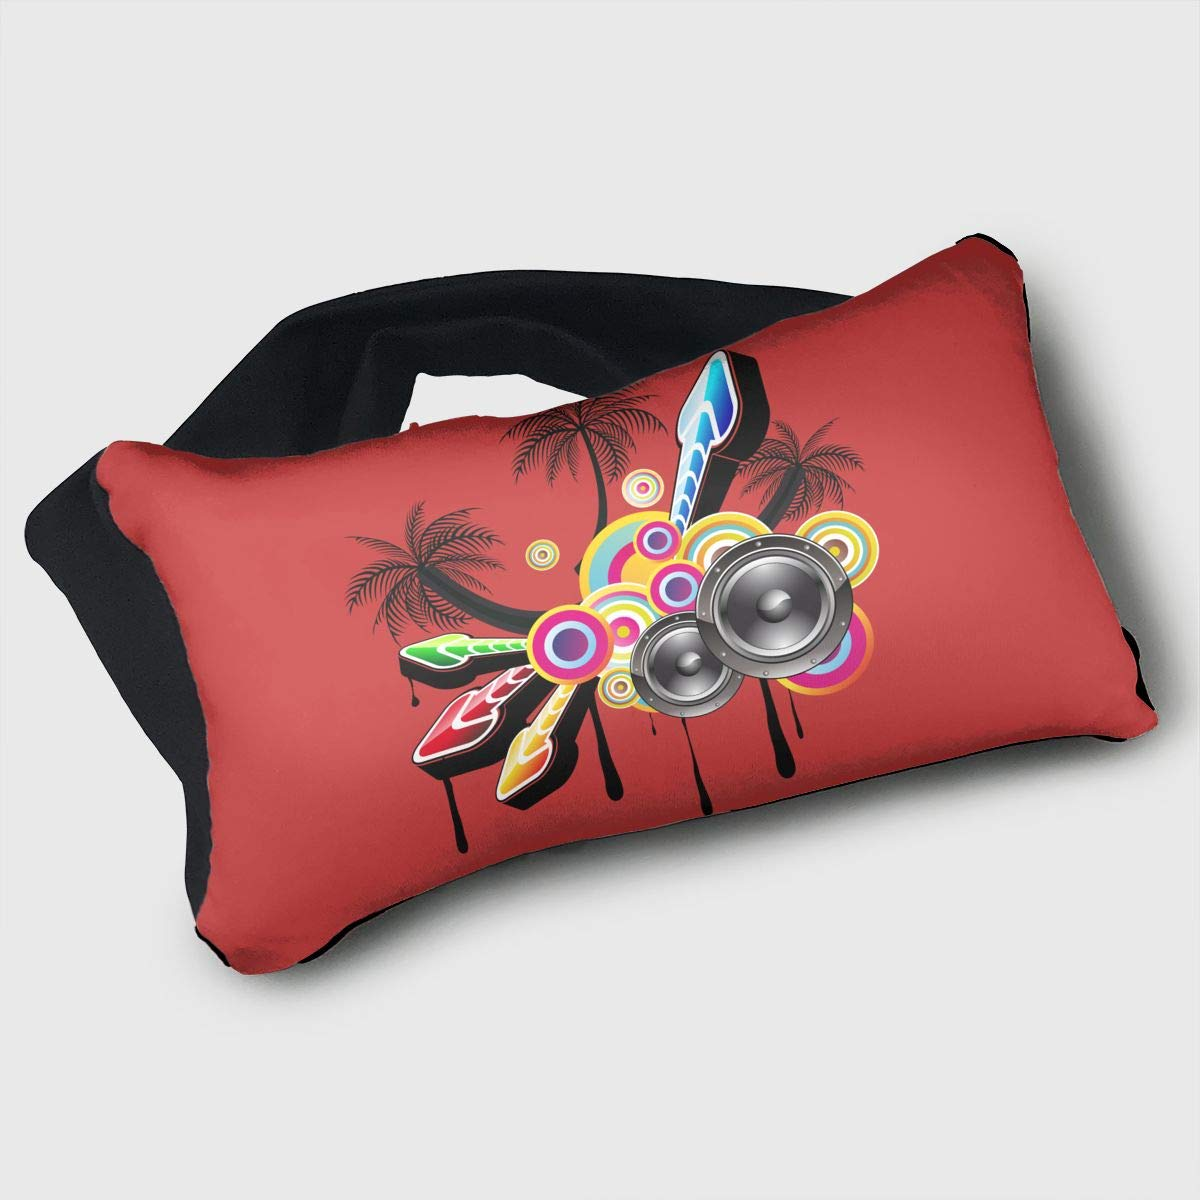 Voyage Travel Pillow Eye Mask 2 in 1 Portable Neck Support Scarf Sound Music Ergonomic Naps Rest Pillows Sleeper Versatile for Airplanes Car Train Bus Home Office